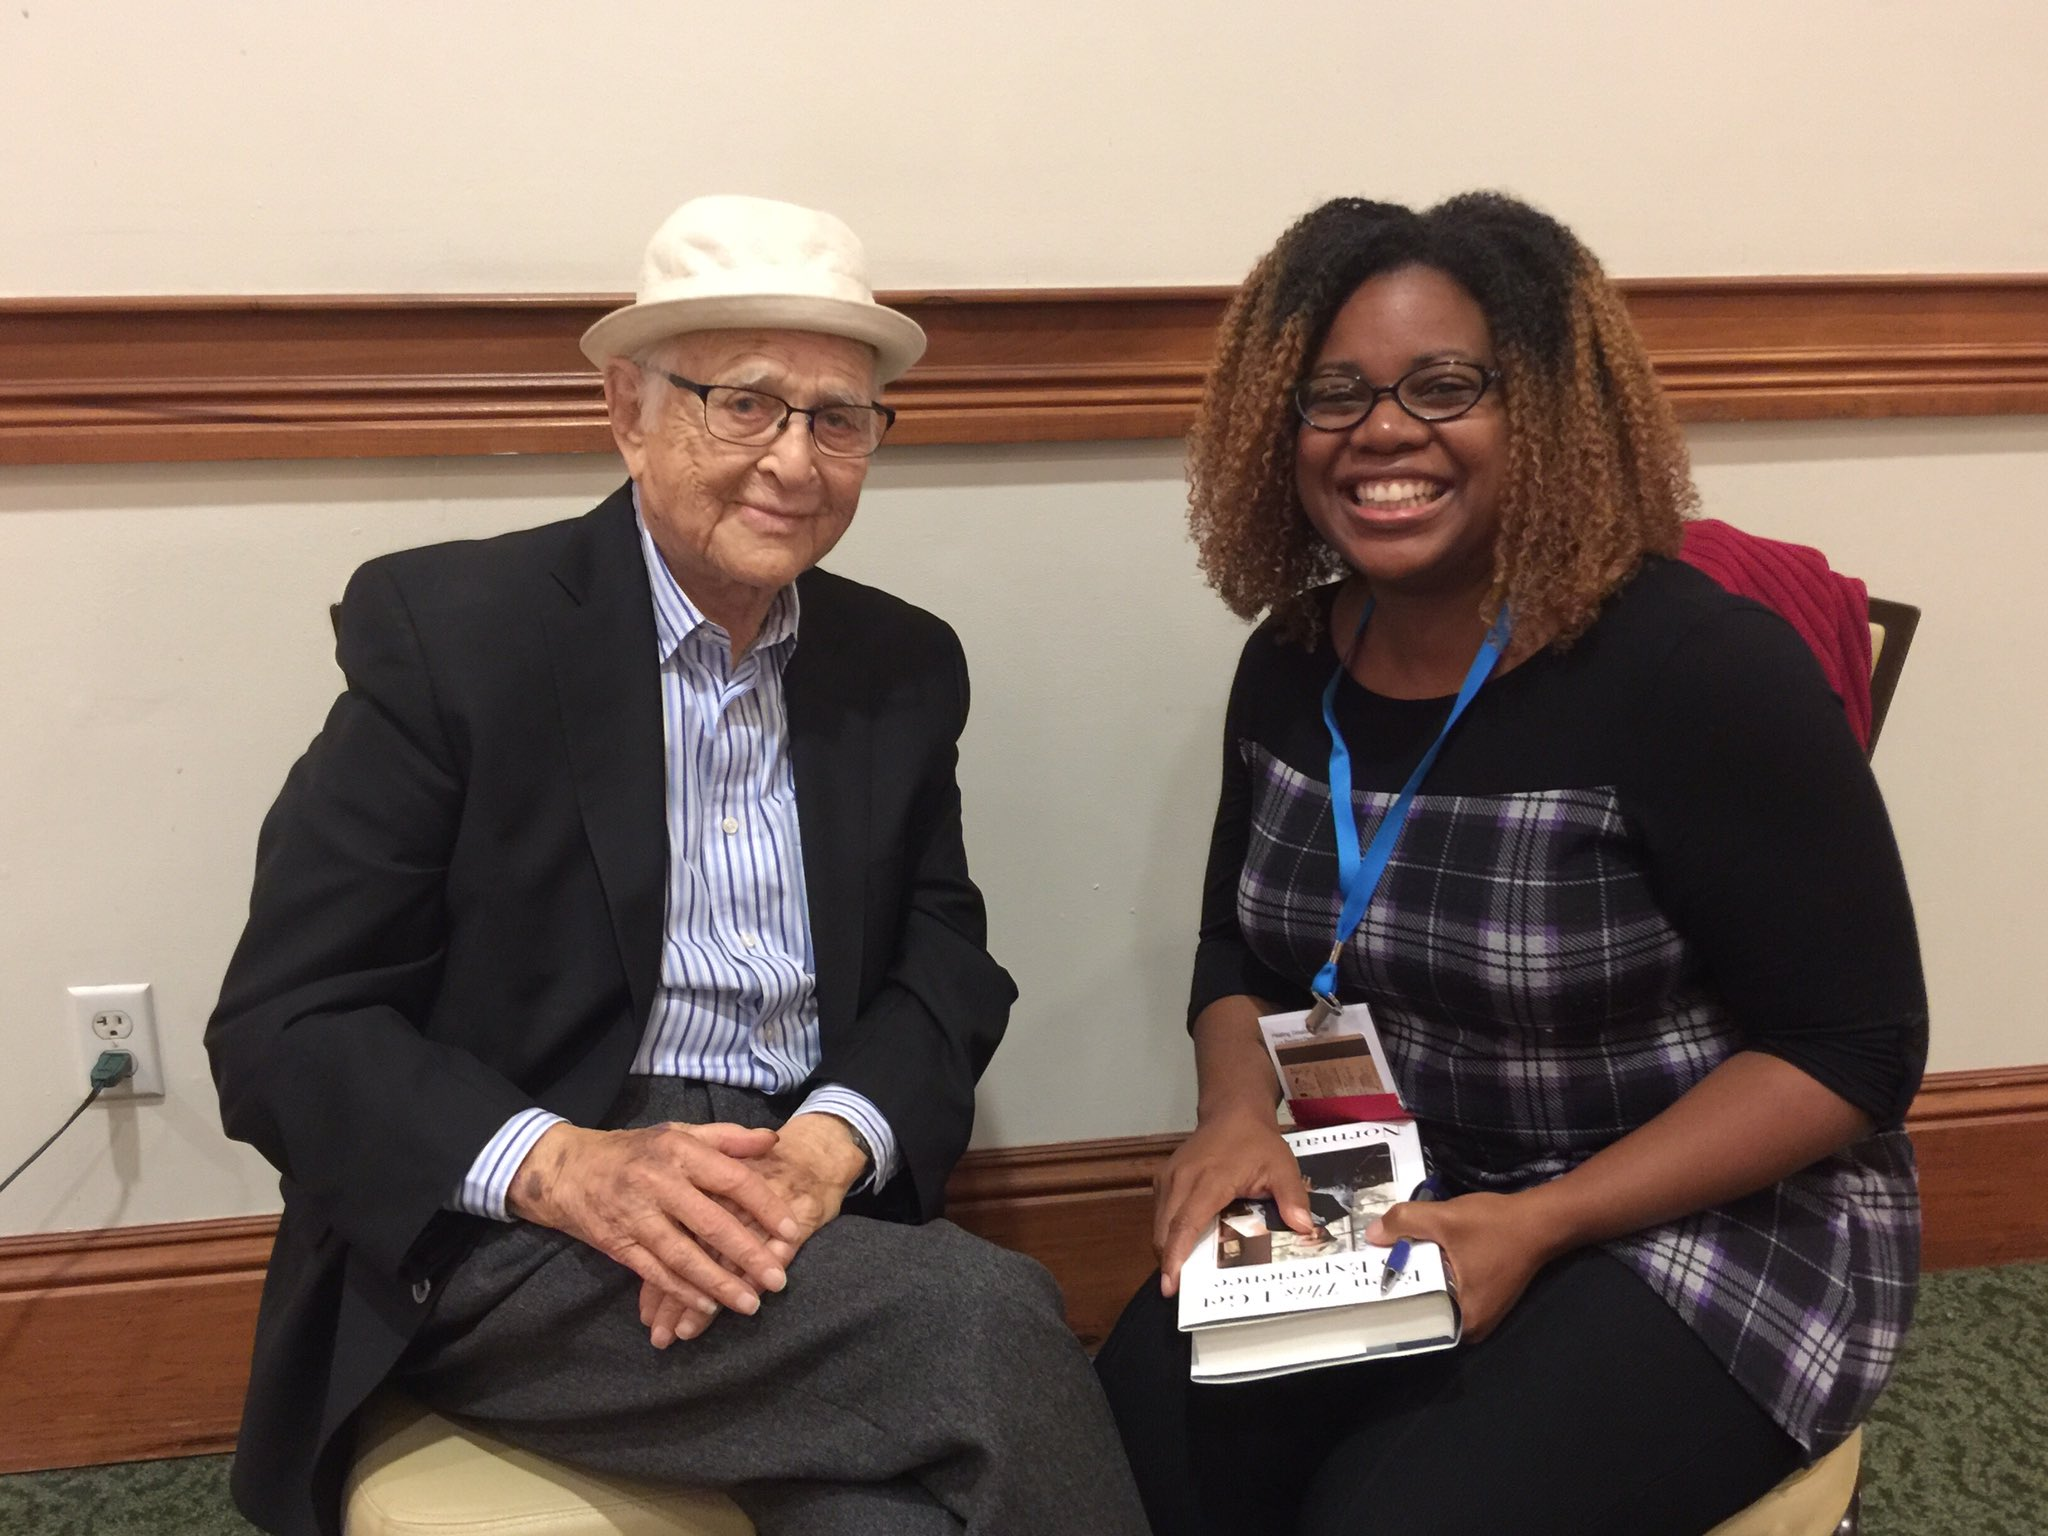 Norman Lear impacted decades of racial narrative through entertainment. Just a delight. And he said I had a beautiful smile. #TRHT https://t.co/tZgh7OasG5